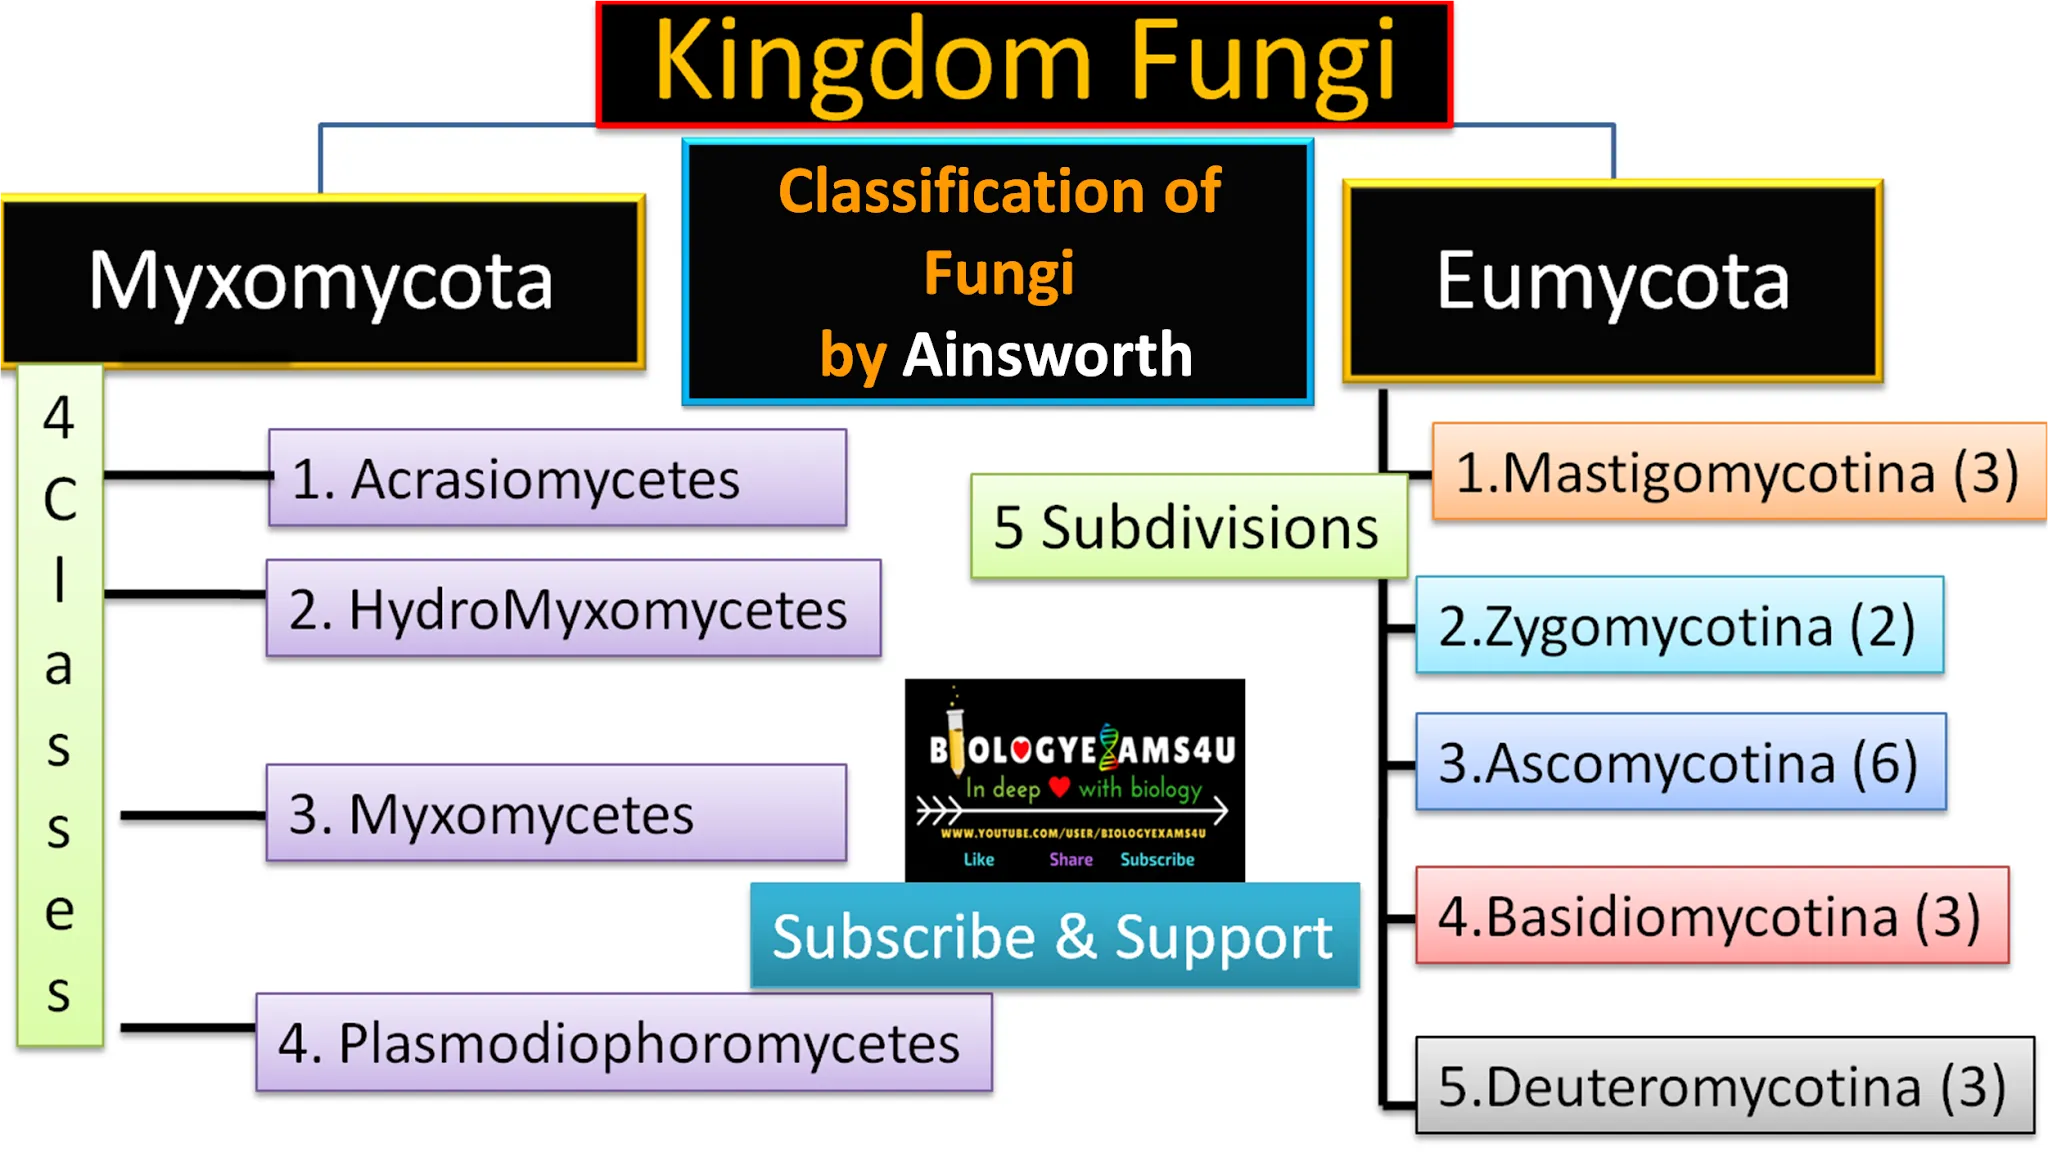 Ainsworth classification of Fungi Flow chart with example